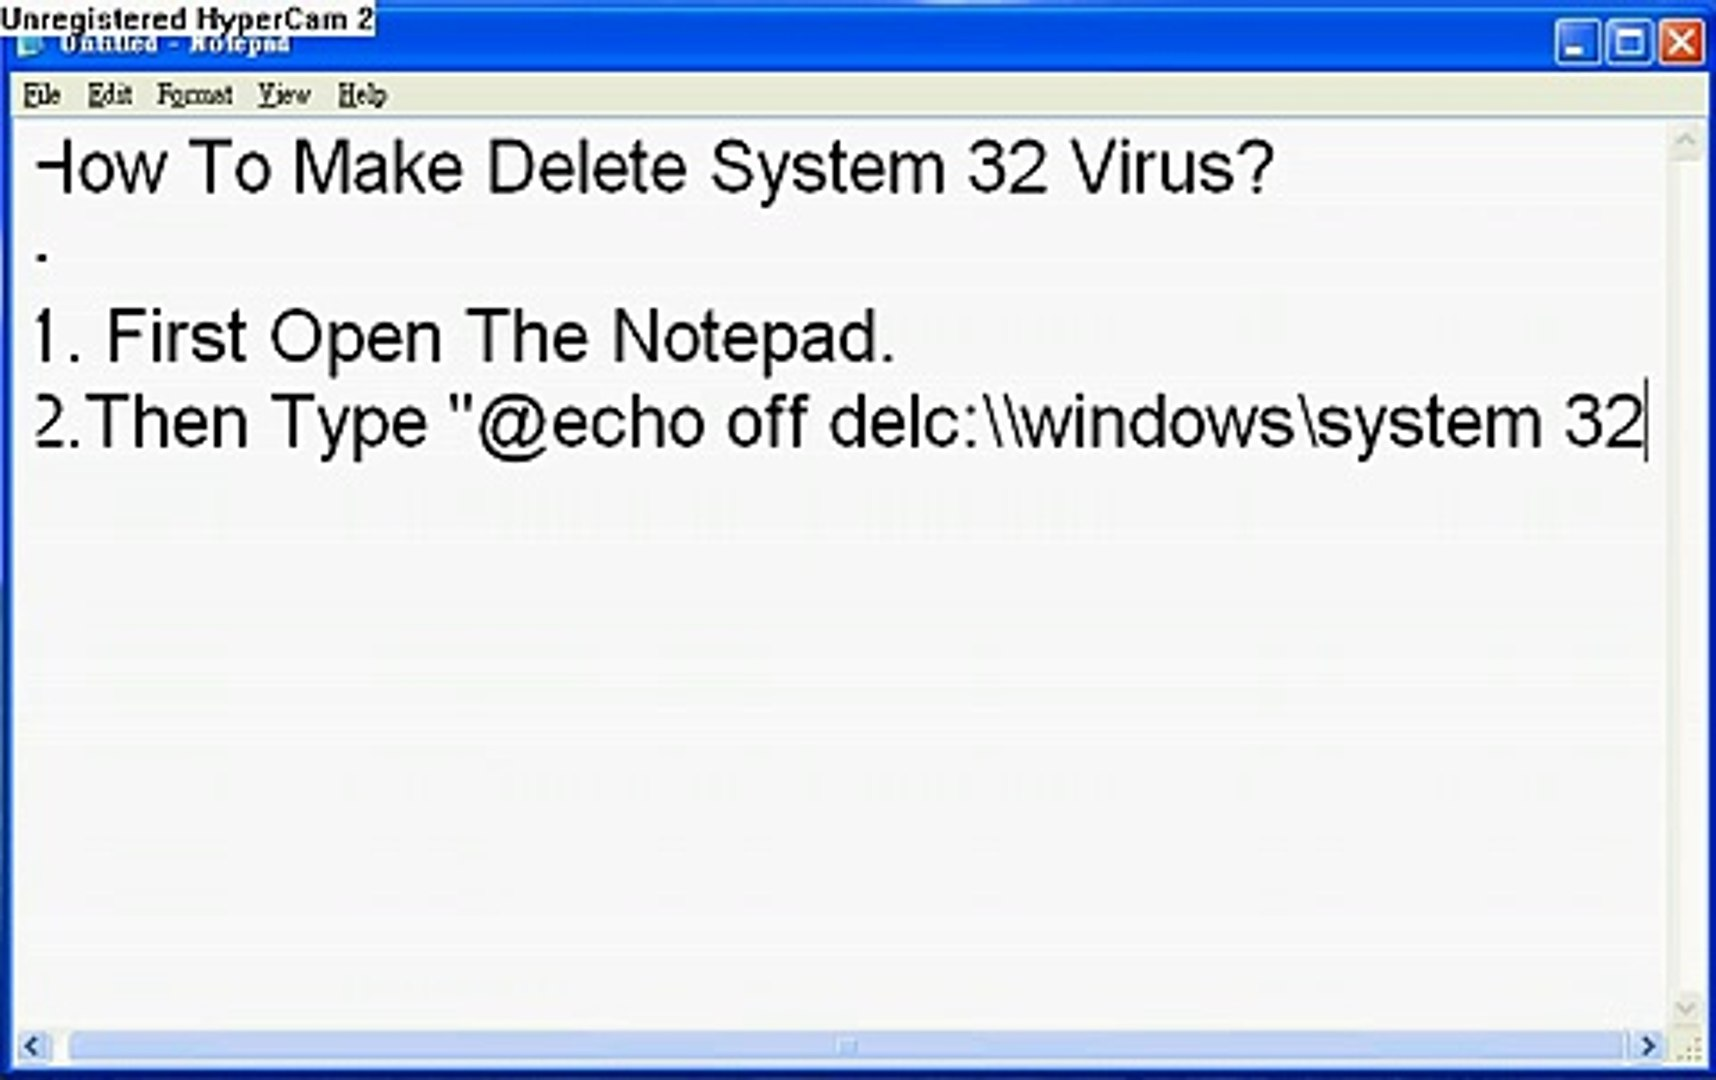 How To Make Delete System 32 Virus